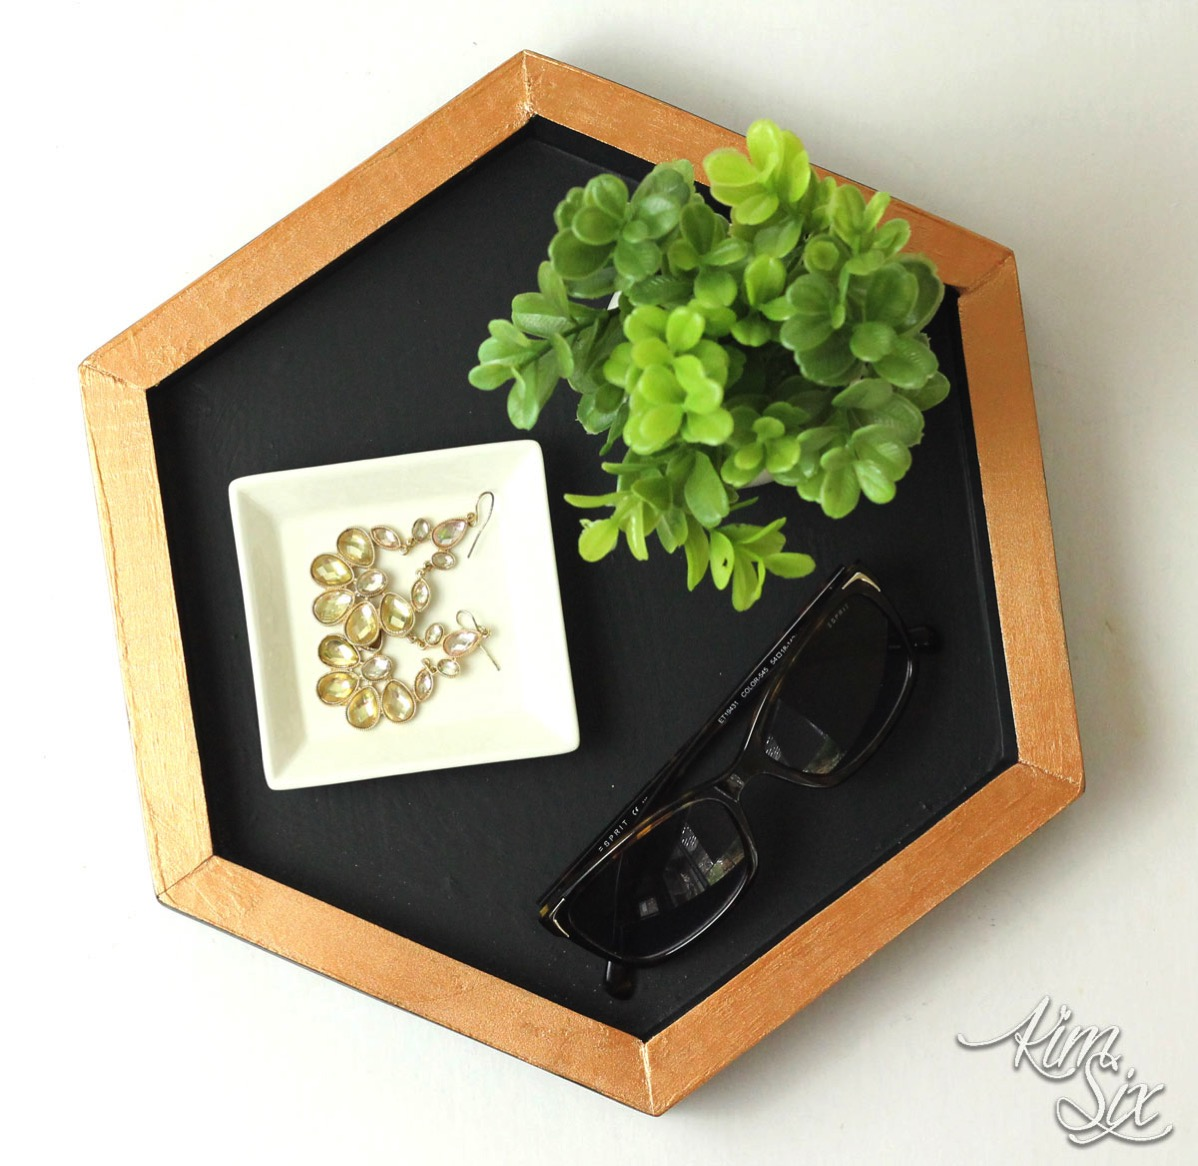 Easy Hexagon Shaped Wooden Tray - The Kim Six Fix